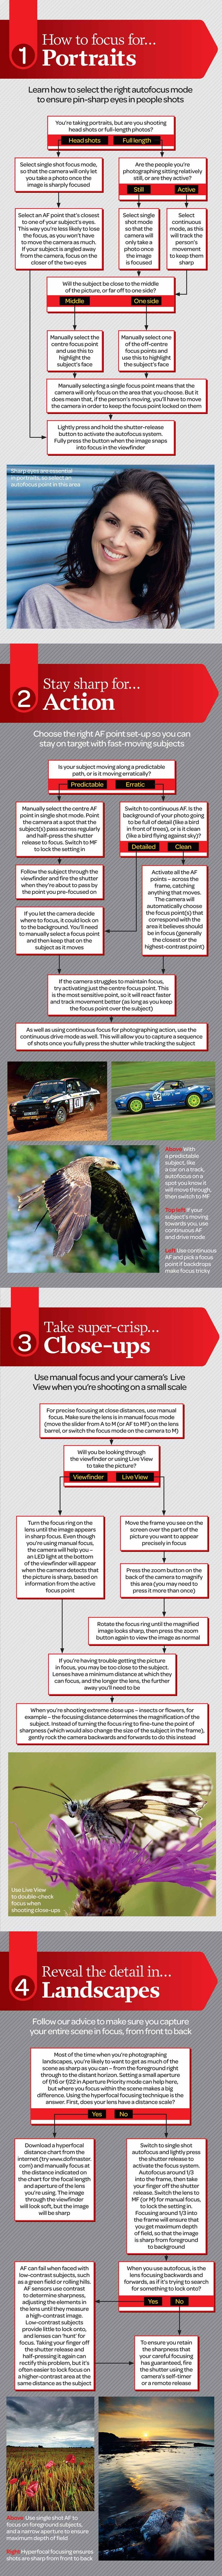 Photography Tips   How to focus your camera for any subject or scene: free photography cheat sheet